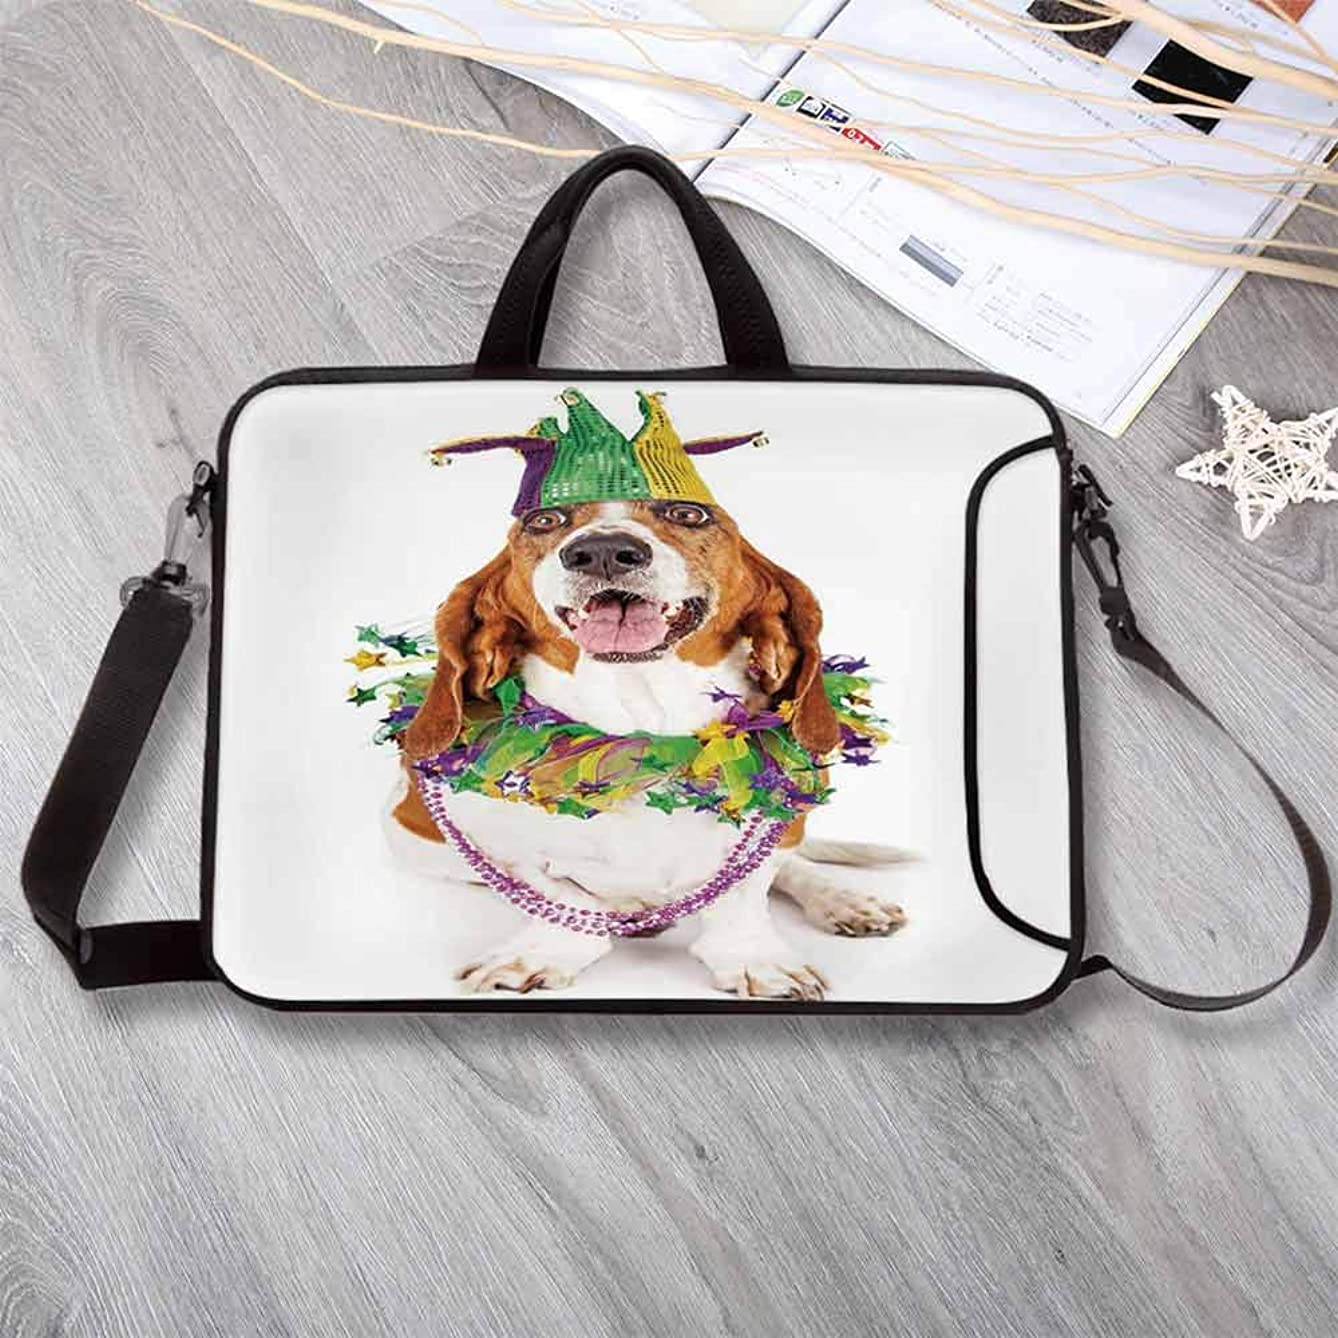 """Mardi Gras Printing Neoprene Laptop Bag,Happy Smiling Basset Hound Dog Wearing a Jester Hat Neck Garland Bead Necklace Decorative Laptop Bag for 10 Inch to 17 Inch Laptop,14.6""""L x 10.6""""W x 0.8""""H"""